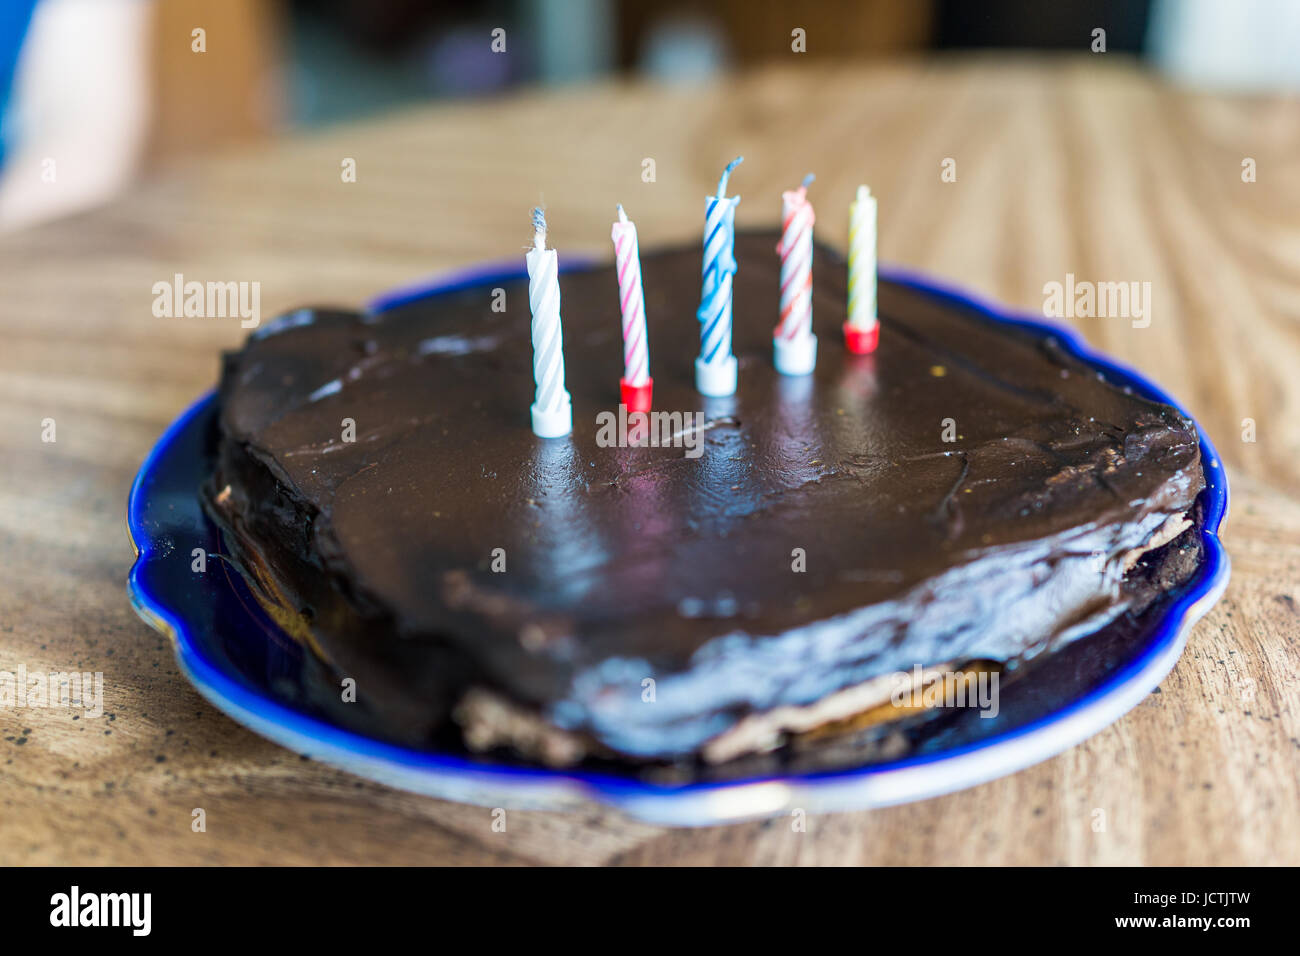 Groovy Simple Square Small Chocolate Birthday Cake With Five Colorful Personalised Birthday Cards Paralily Jamesorg